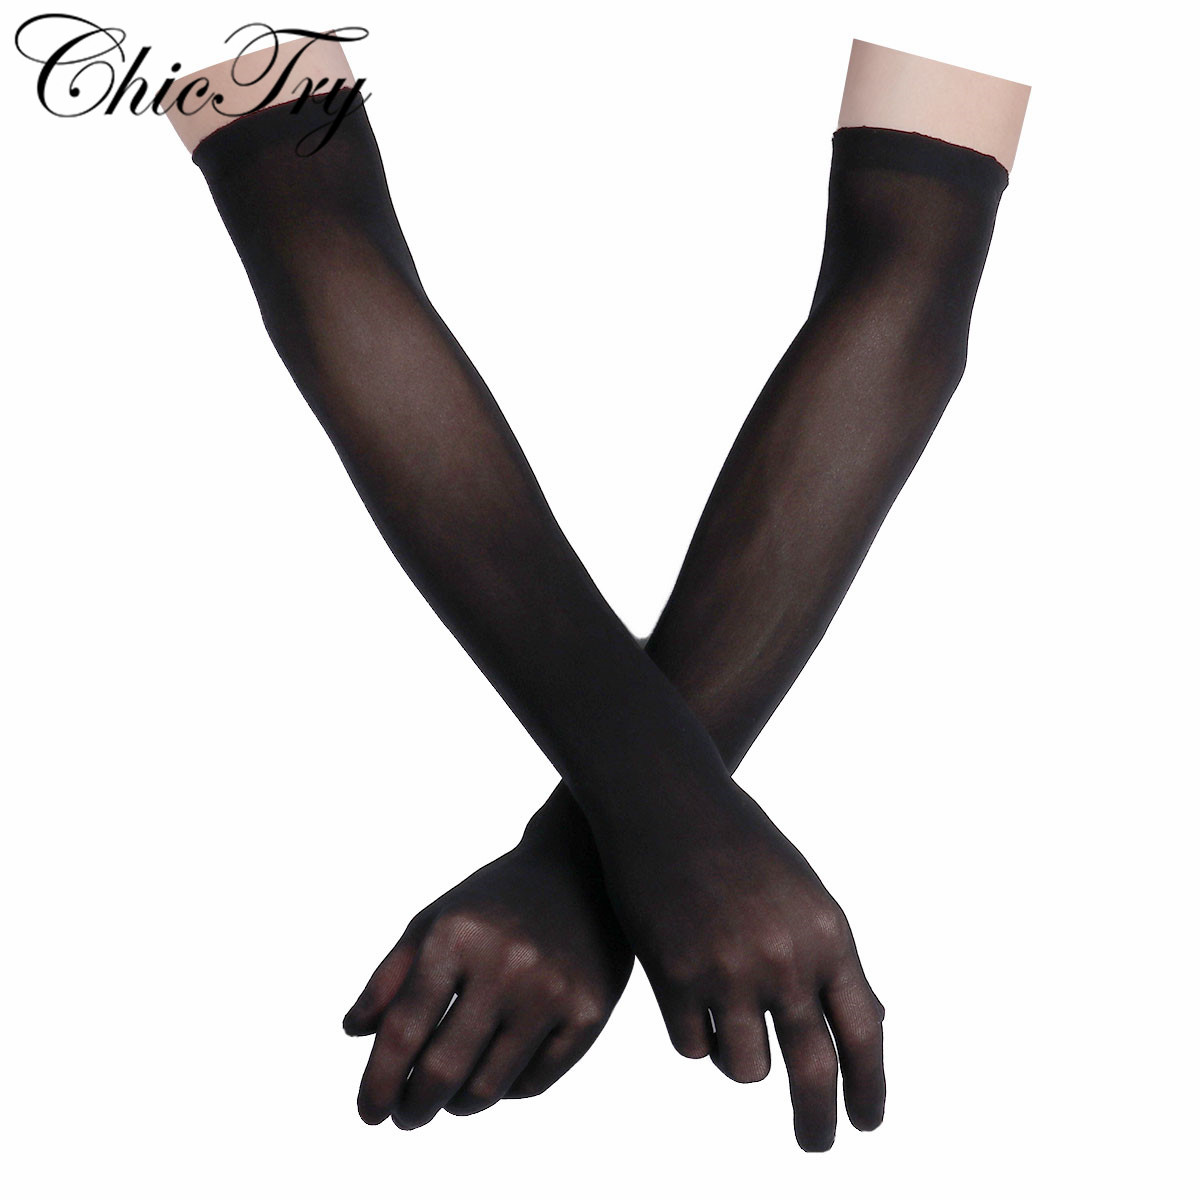 ChicTry See Through Sexy Women Gloves Smooth Sheer Seamles Long Gloves Mittens For Sun Protection Bride Glove Seamless Outdoor